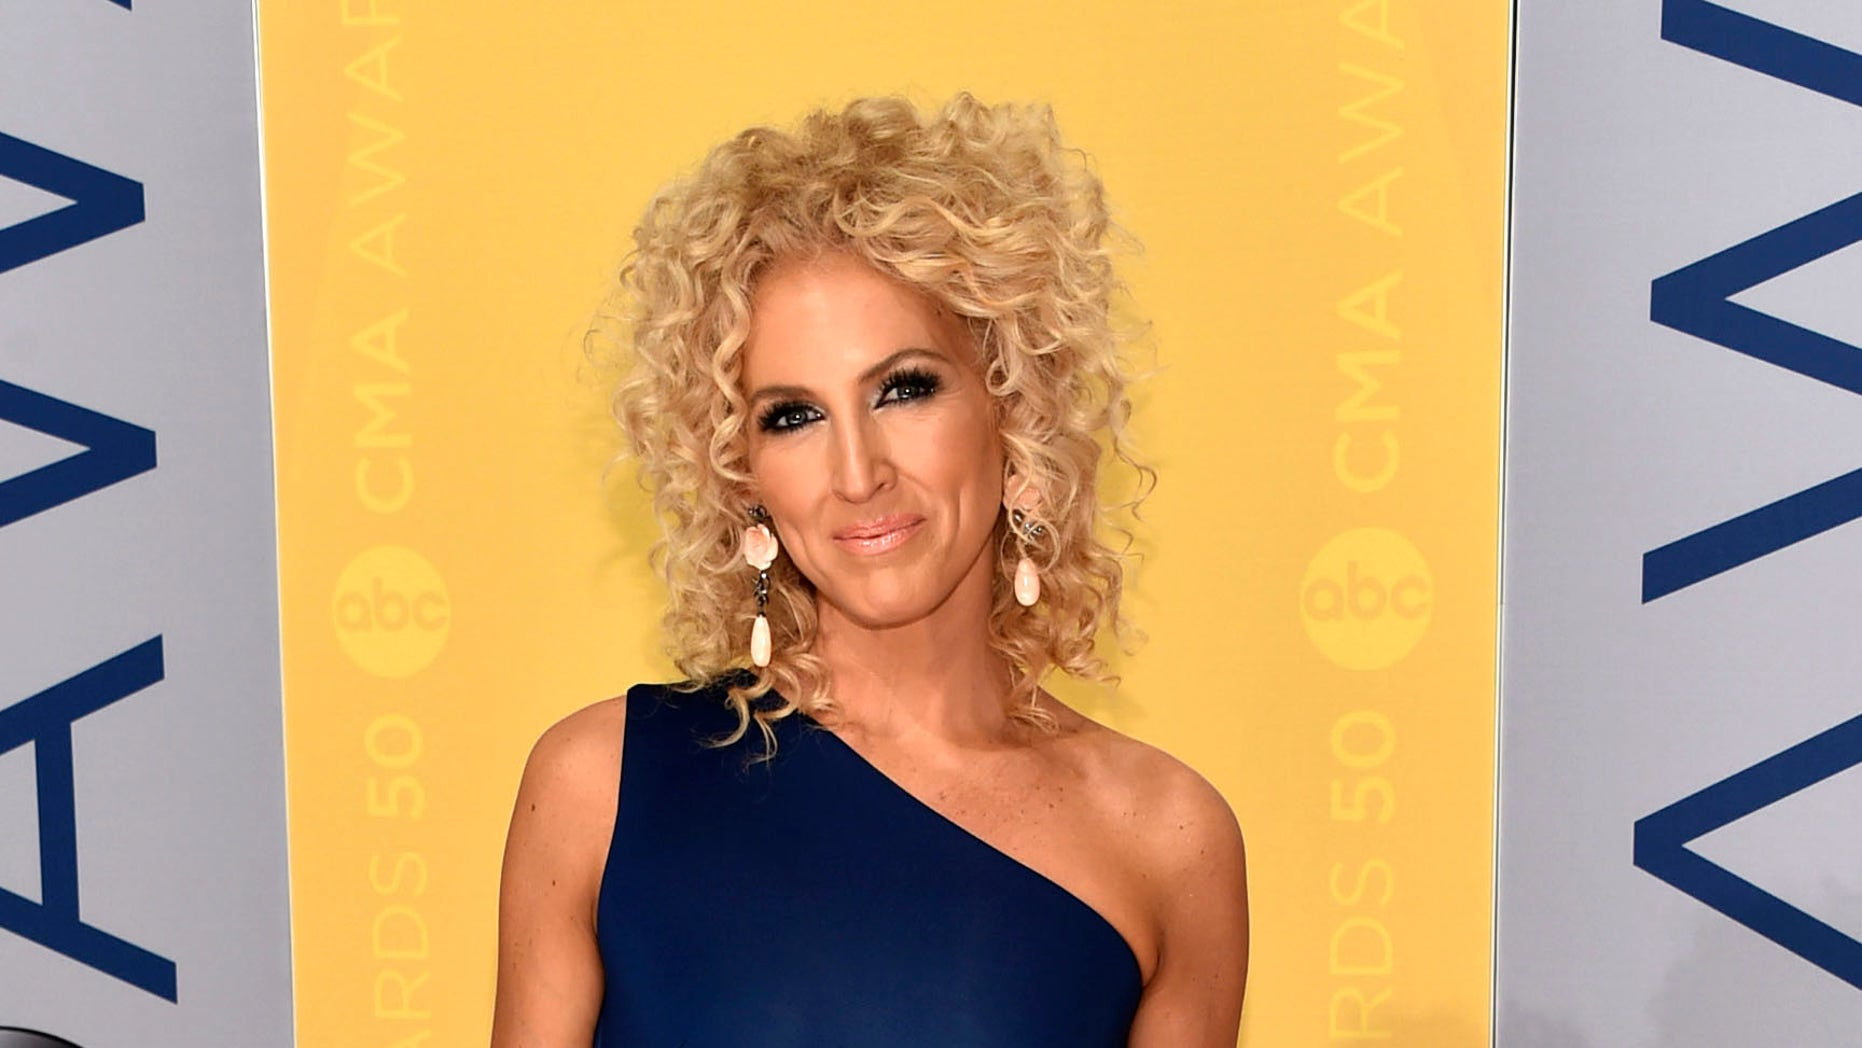 This Nov. 2, 2016 file photo shows Kimberly Schlapman of Little Big Town at the 50th annual CMA Awards in Nashville, Tenn.